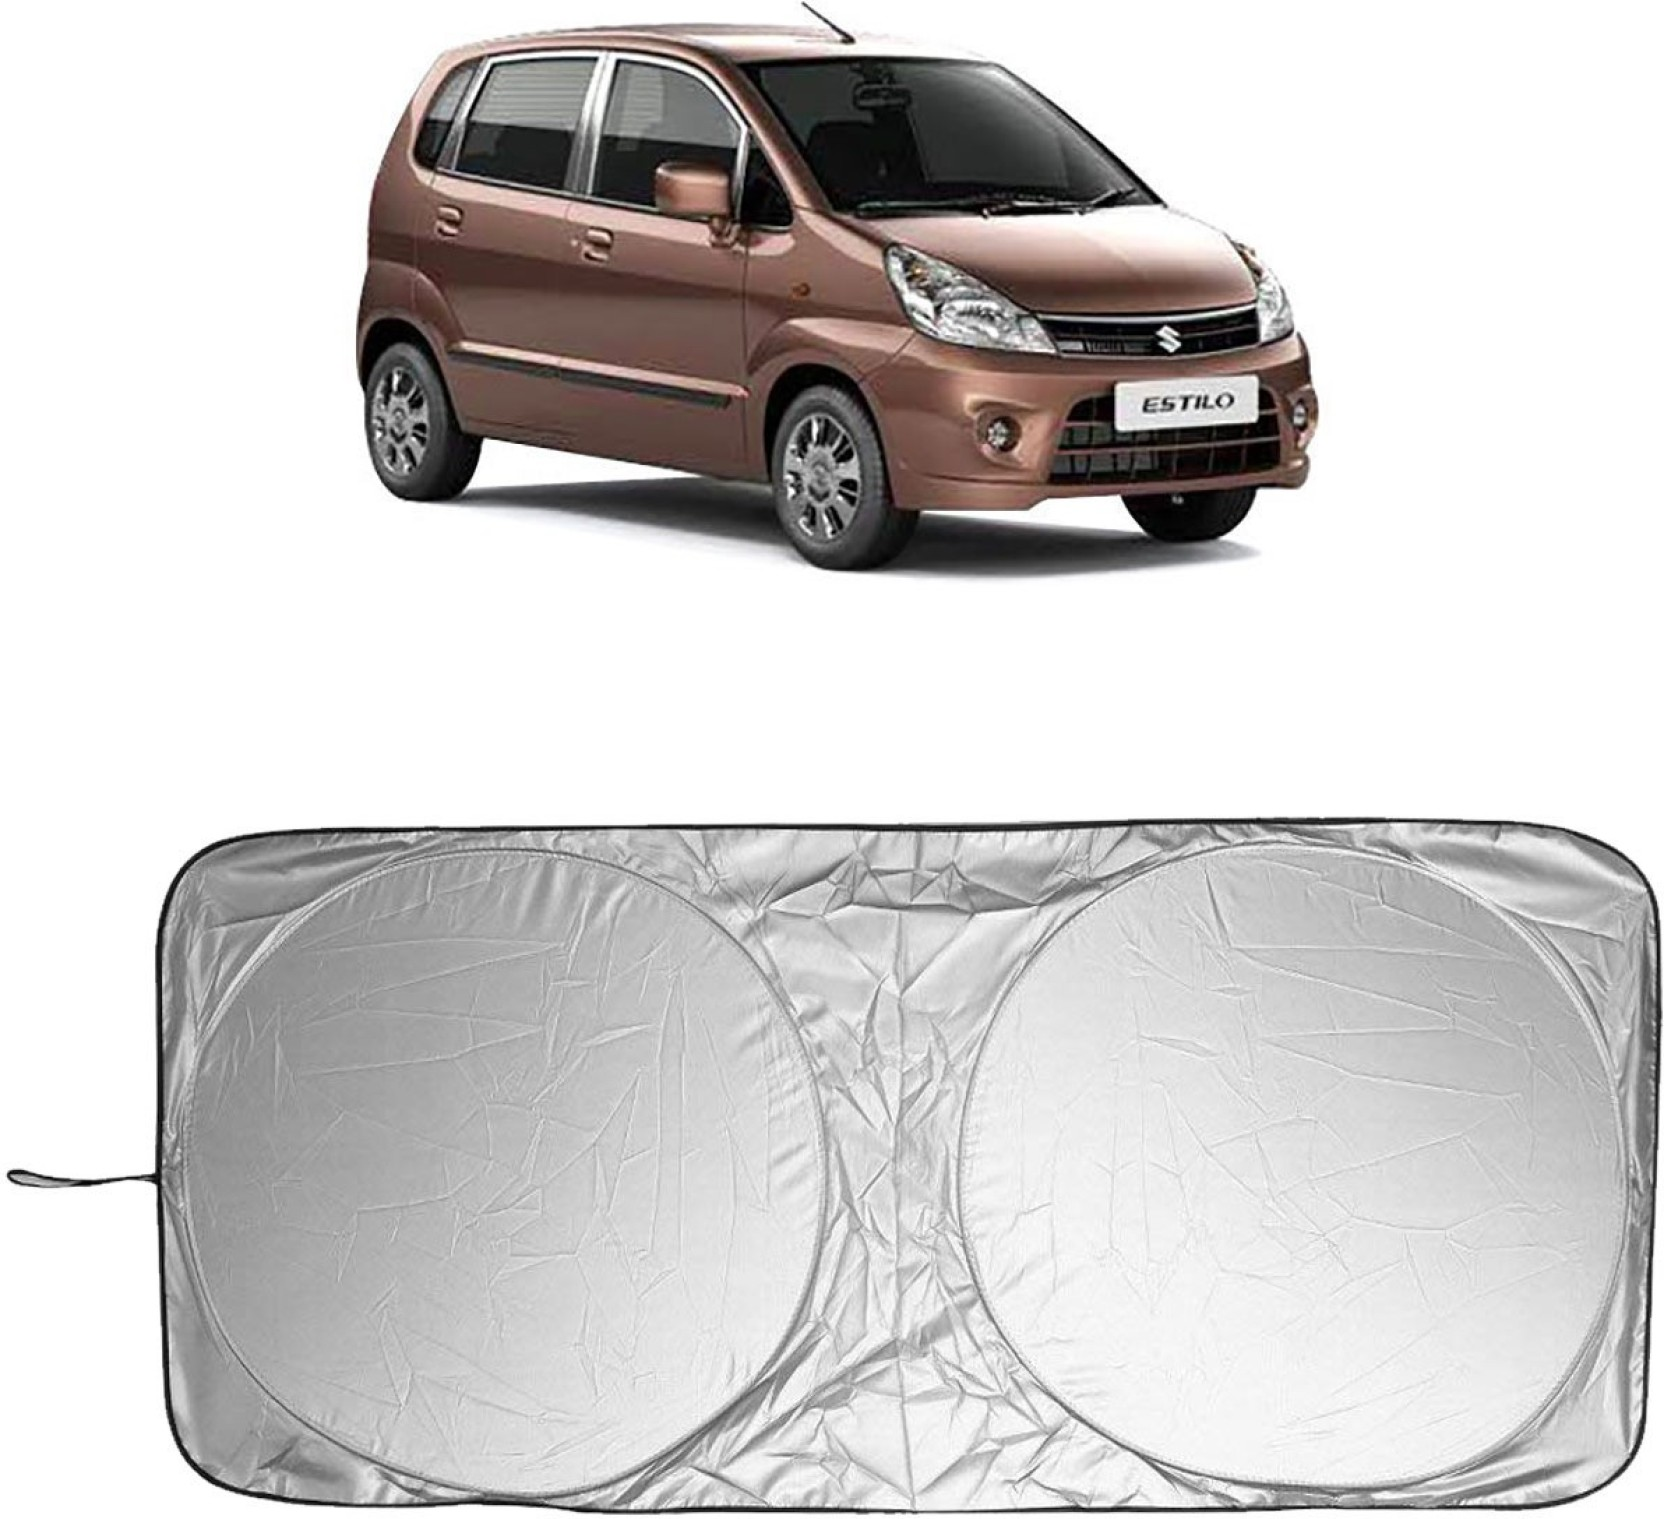 Adroitz side window rear window sun shade for maruti suzuki zen estilo silver black